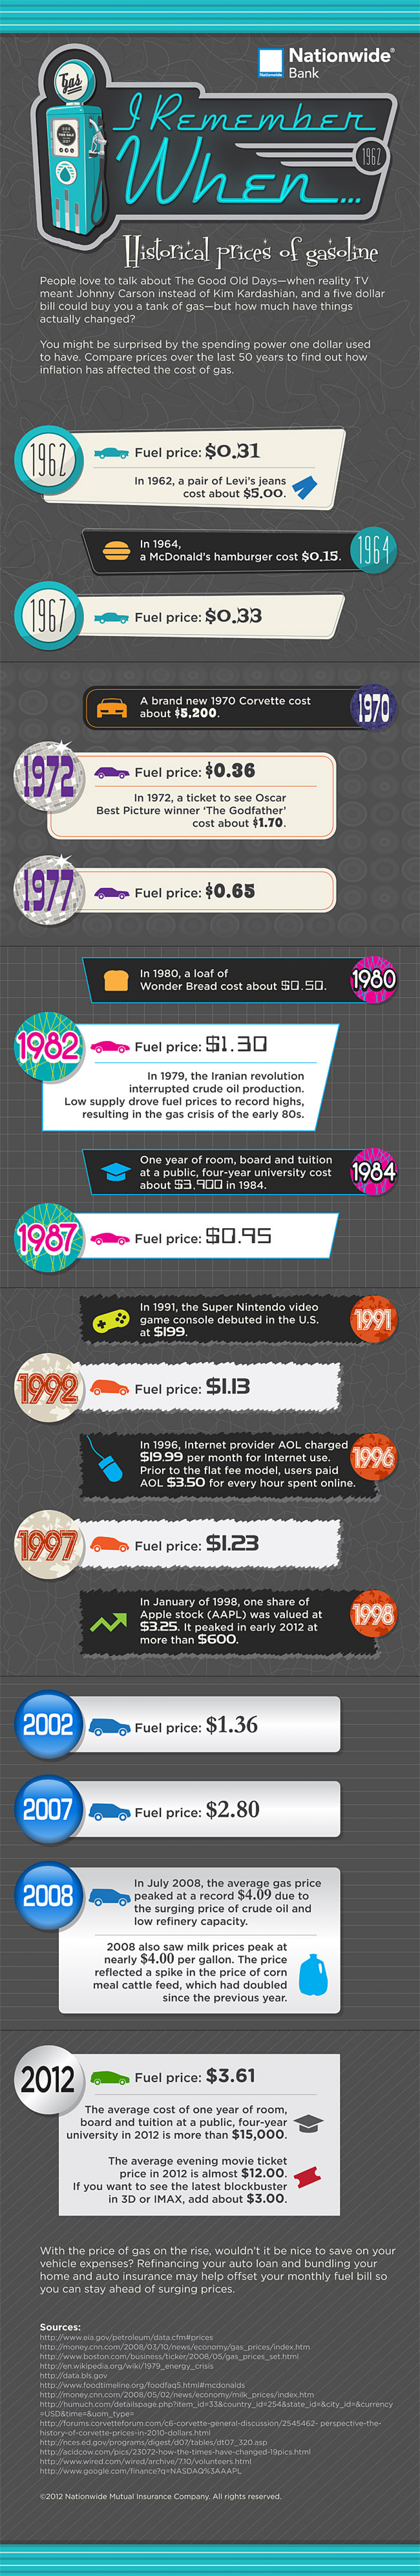 Rising Gas Prices: Discover How Historical Gas Prices Have Changed Over Your Lifetime Infographic